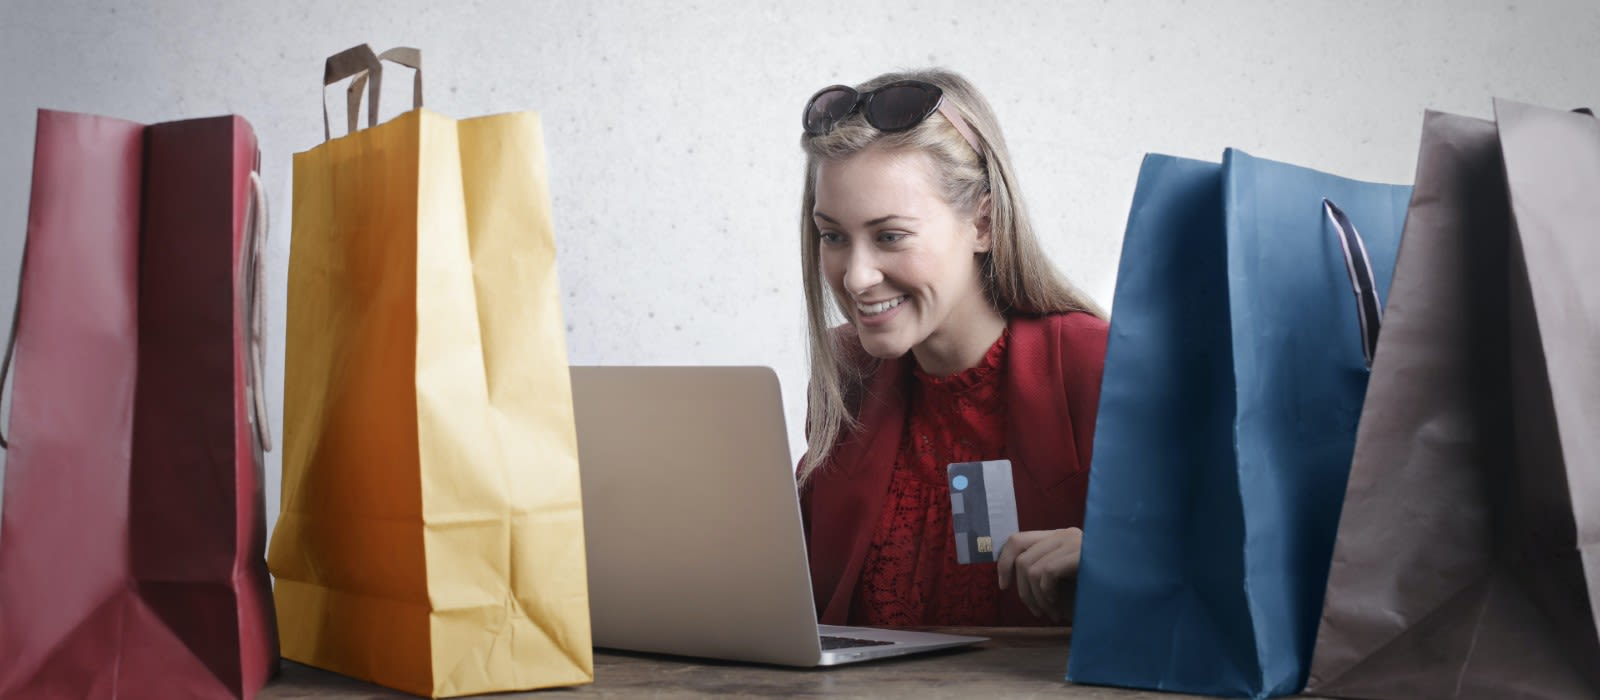 Woman doign online shopping surrounded by shopping bags